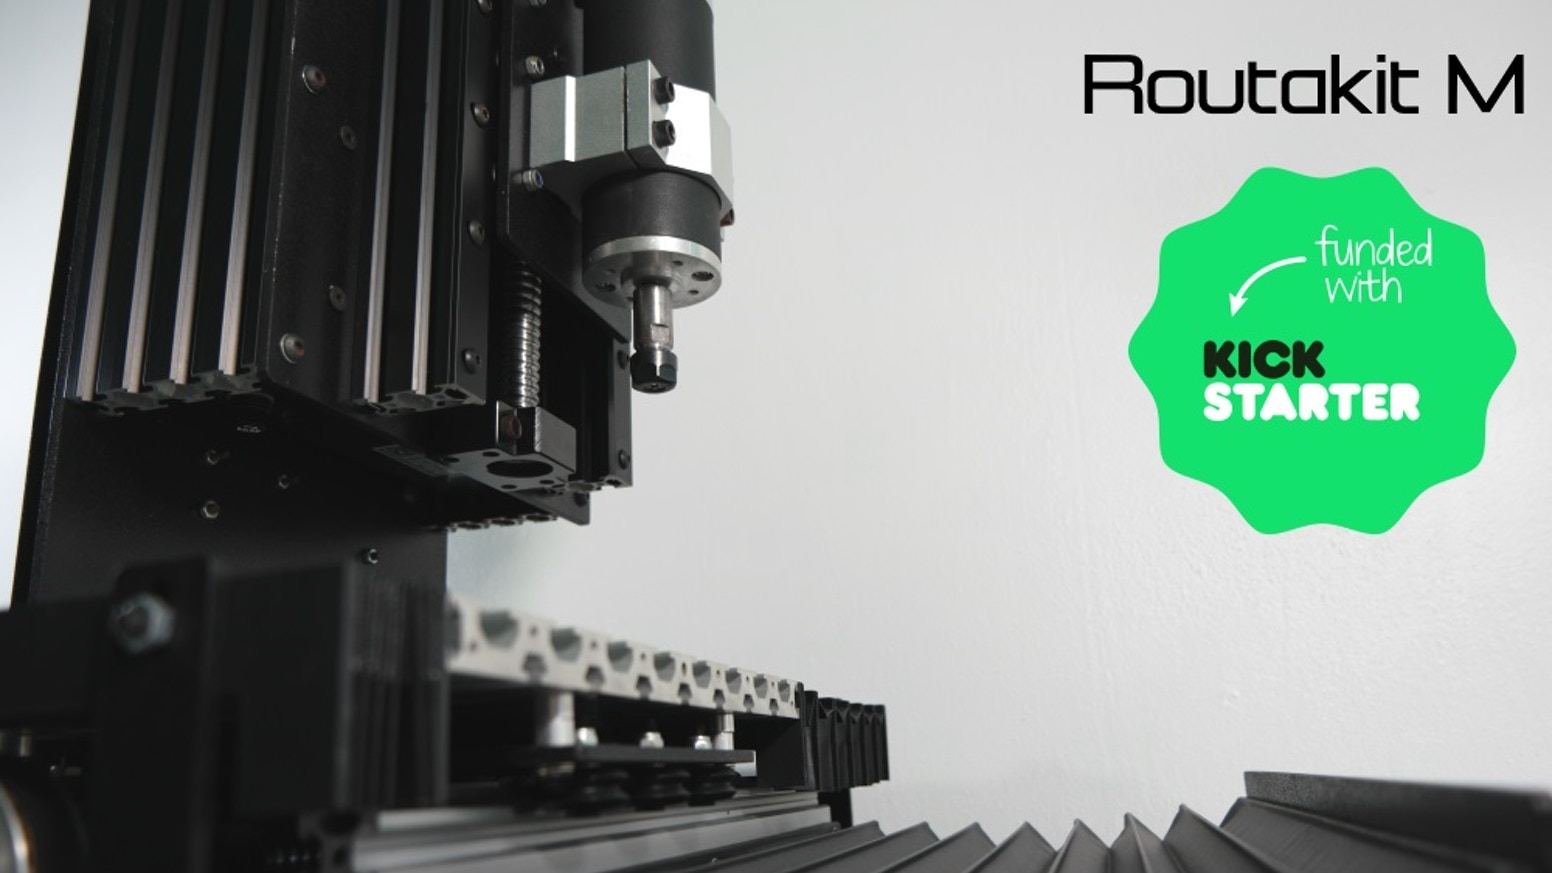 The Routakit M series is our new lineup of desktop CNC machines offering high levels of cutting power and extreme precision.